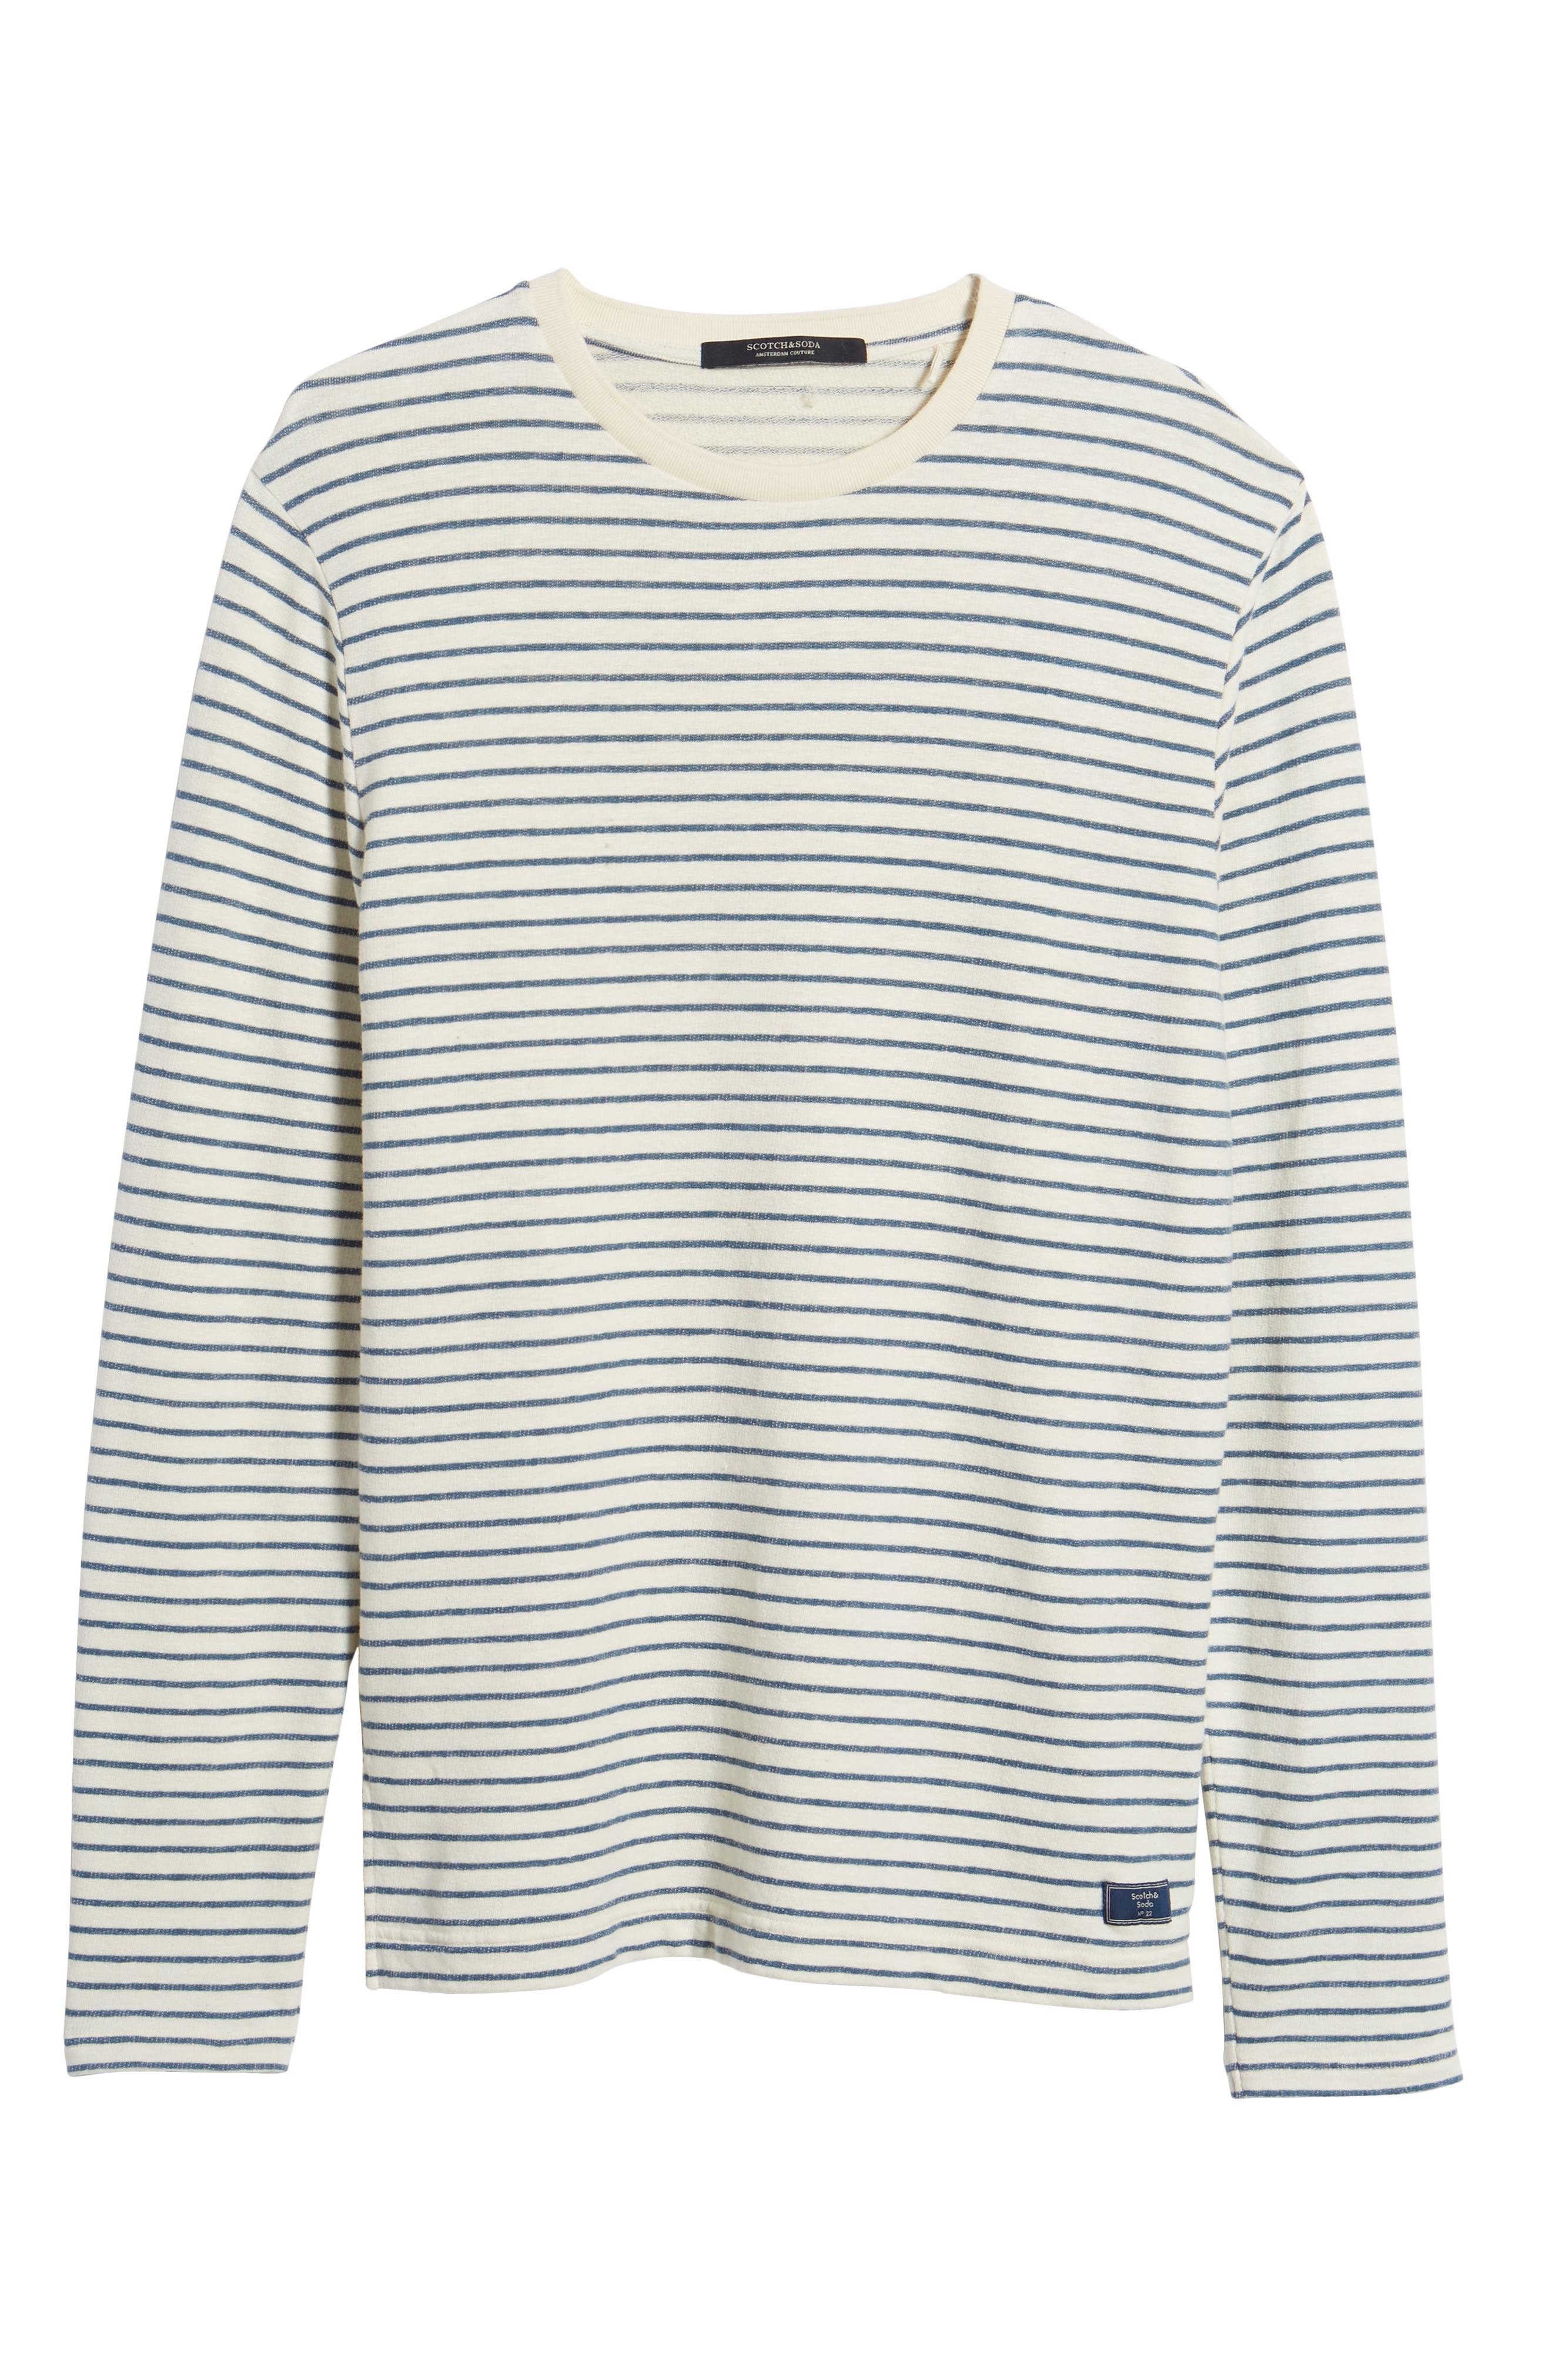 Stripe Crewneck Sweater,                             Alternate thumbnail 6, color,                             250